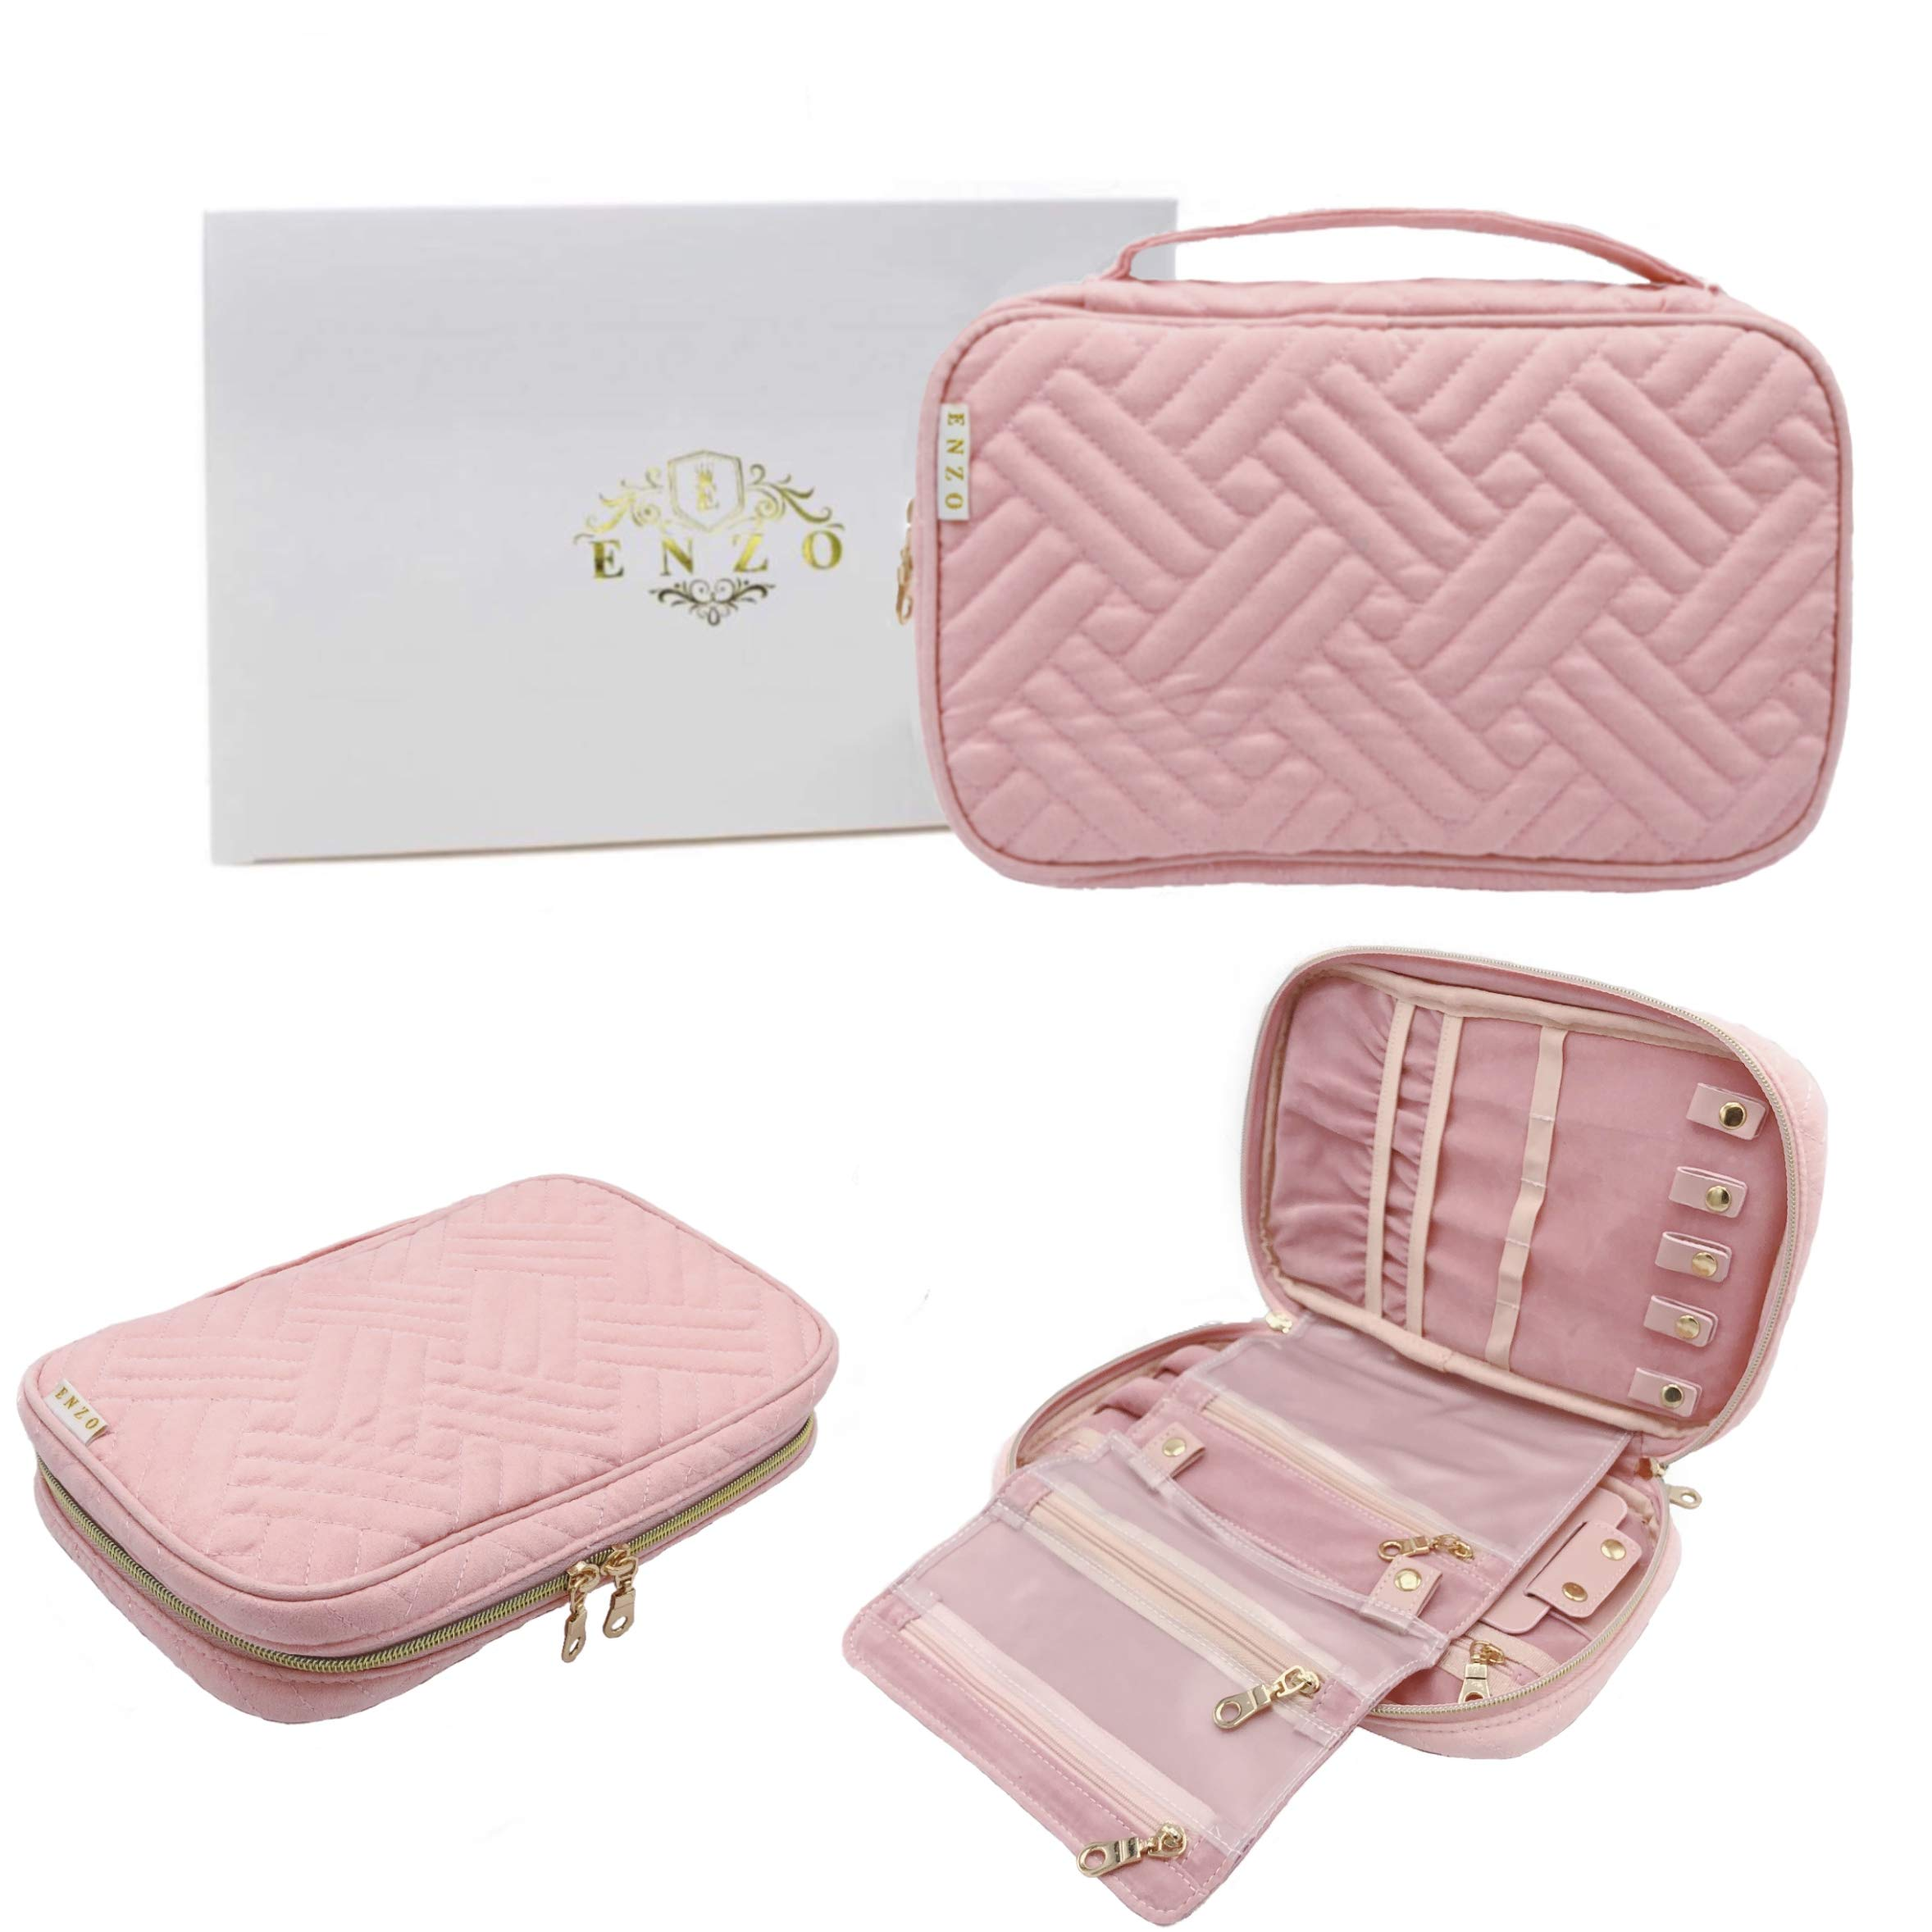 ENZO Travel Jewelry Organizer Storage Case | Organizer Bag | Box for Necklace, Earring, Ring, Bracelet, Watch and More | Portable Compact Accessories Storage Holder (Pink) by Enzo International